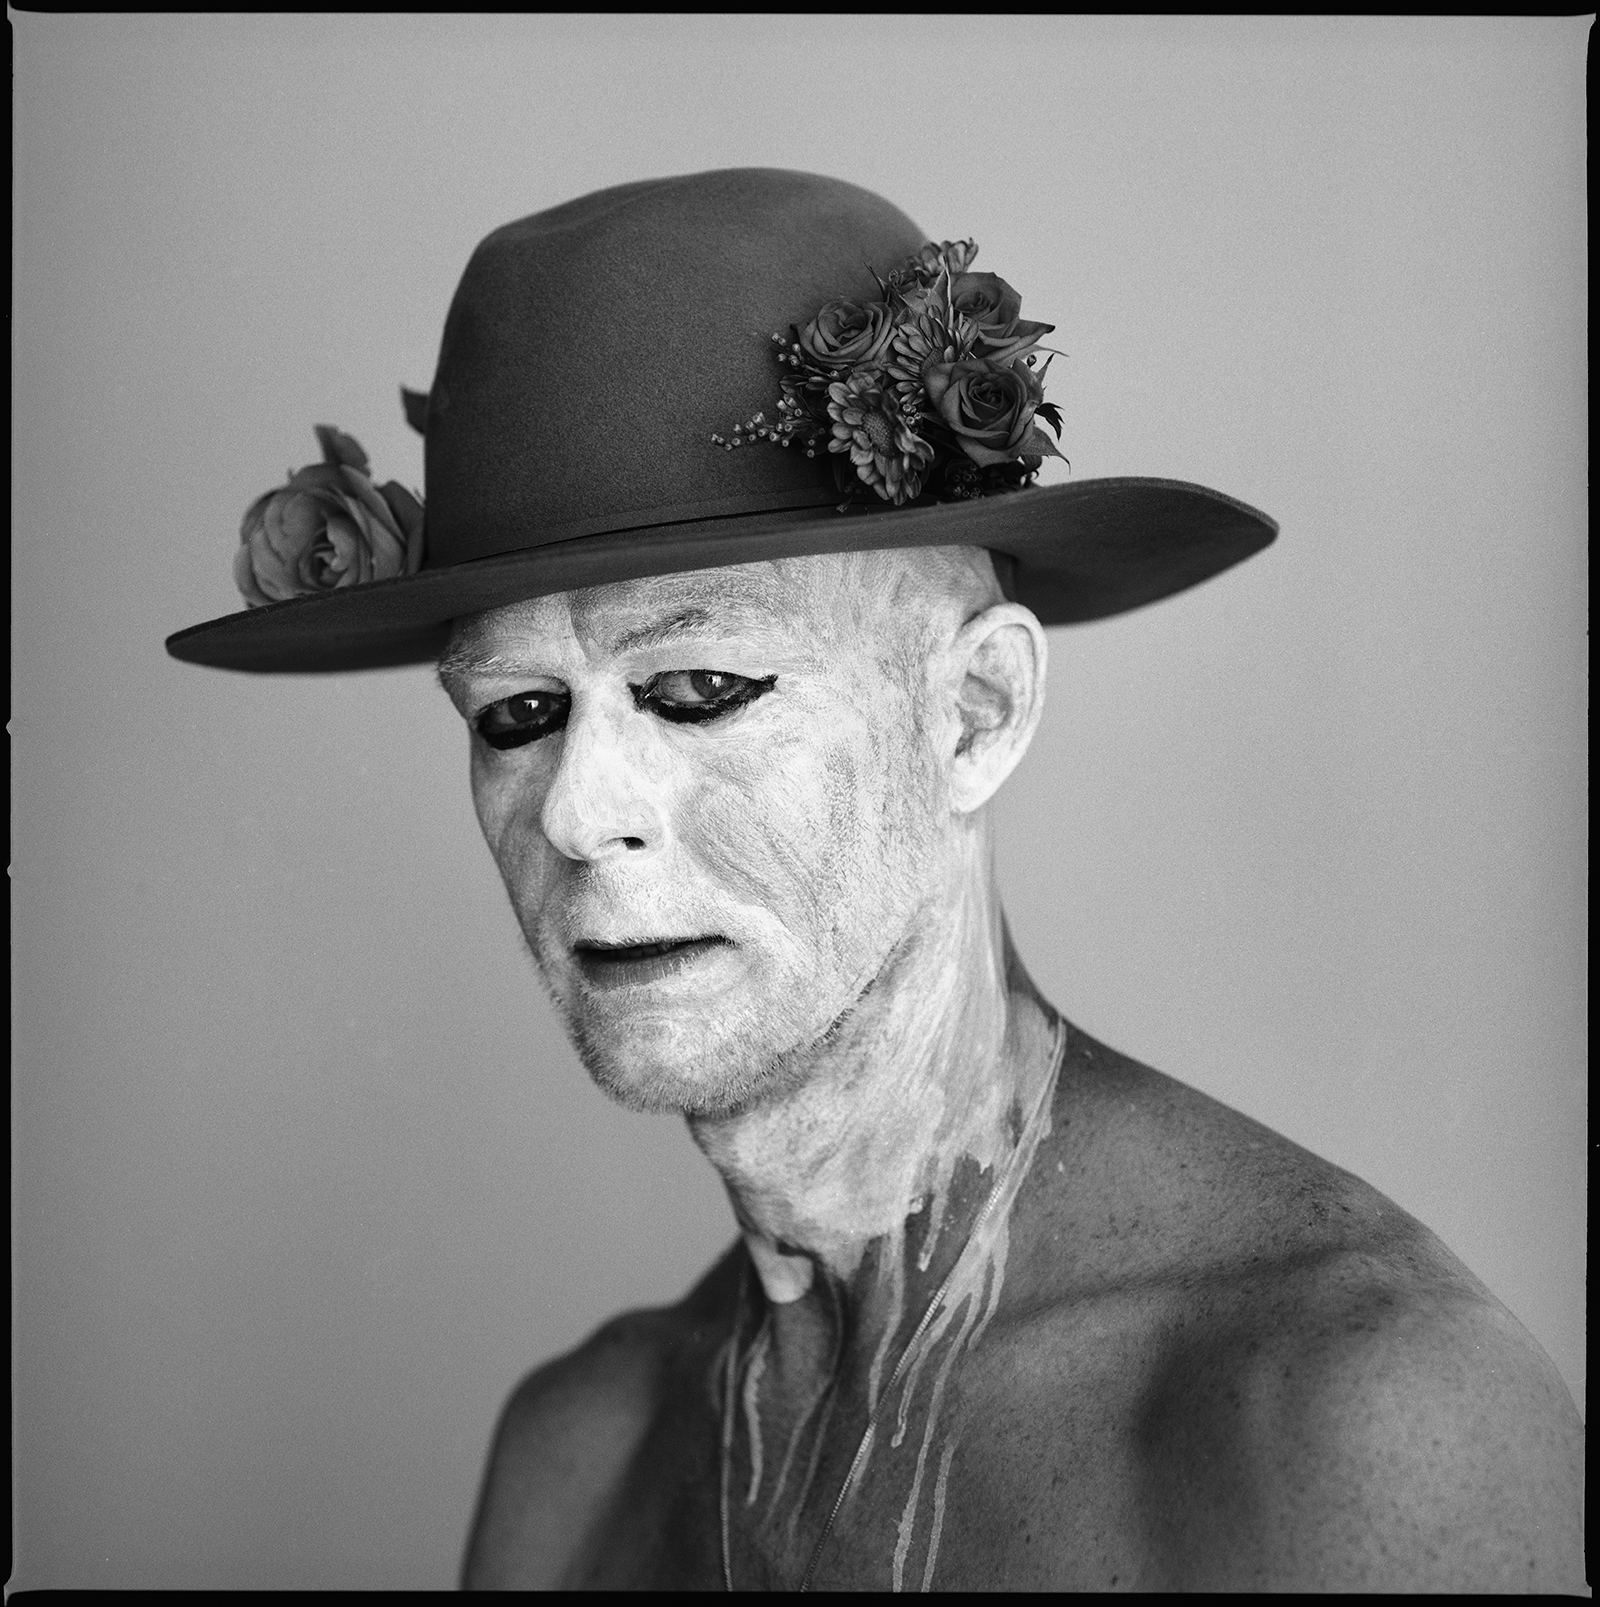 Marc_Johnson_hat_portrait